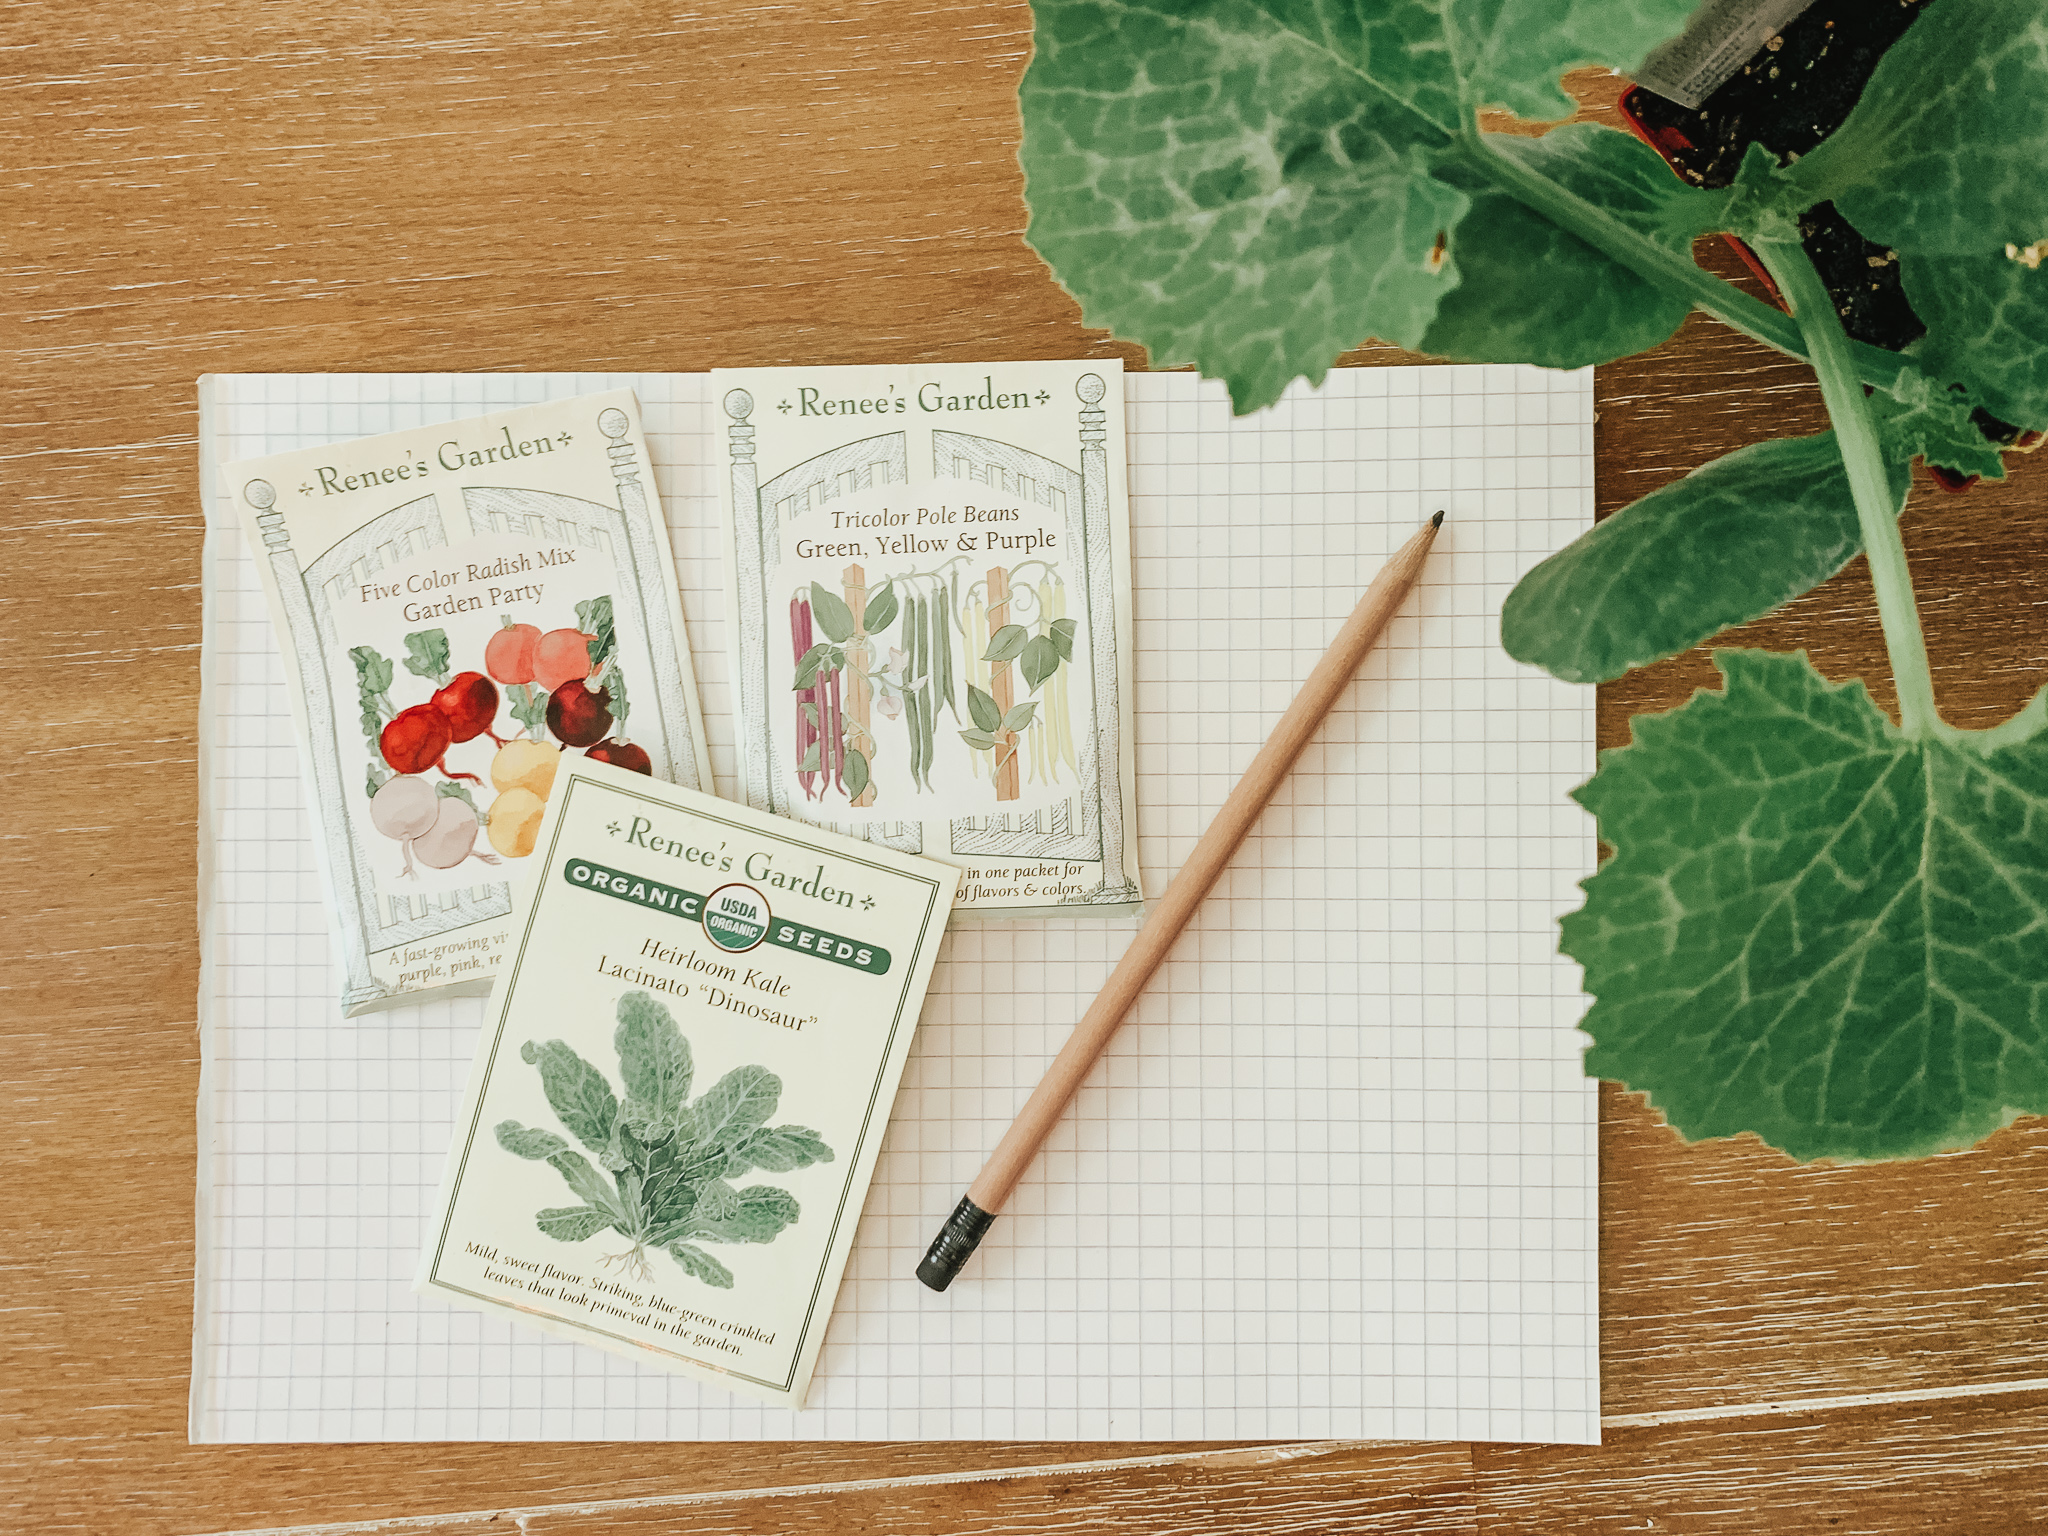 getting ready to map out vegetable garden with seeds and graph paper